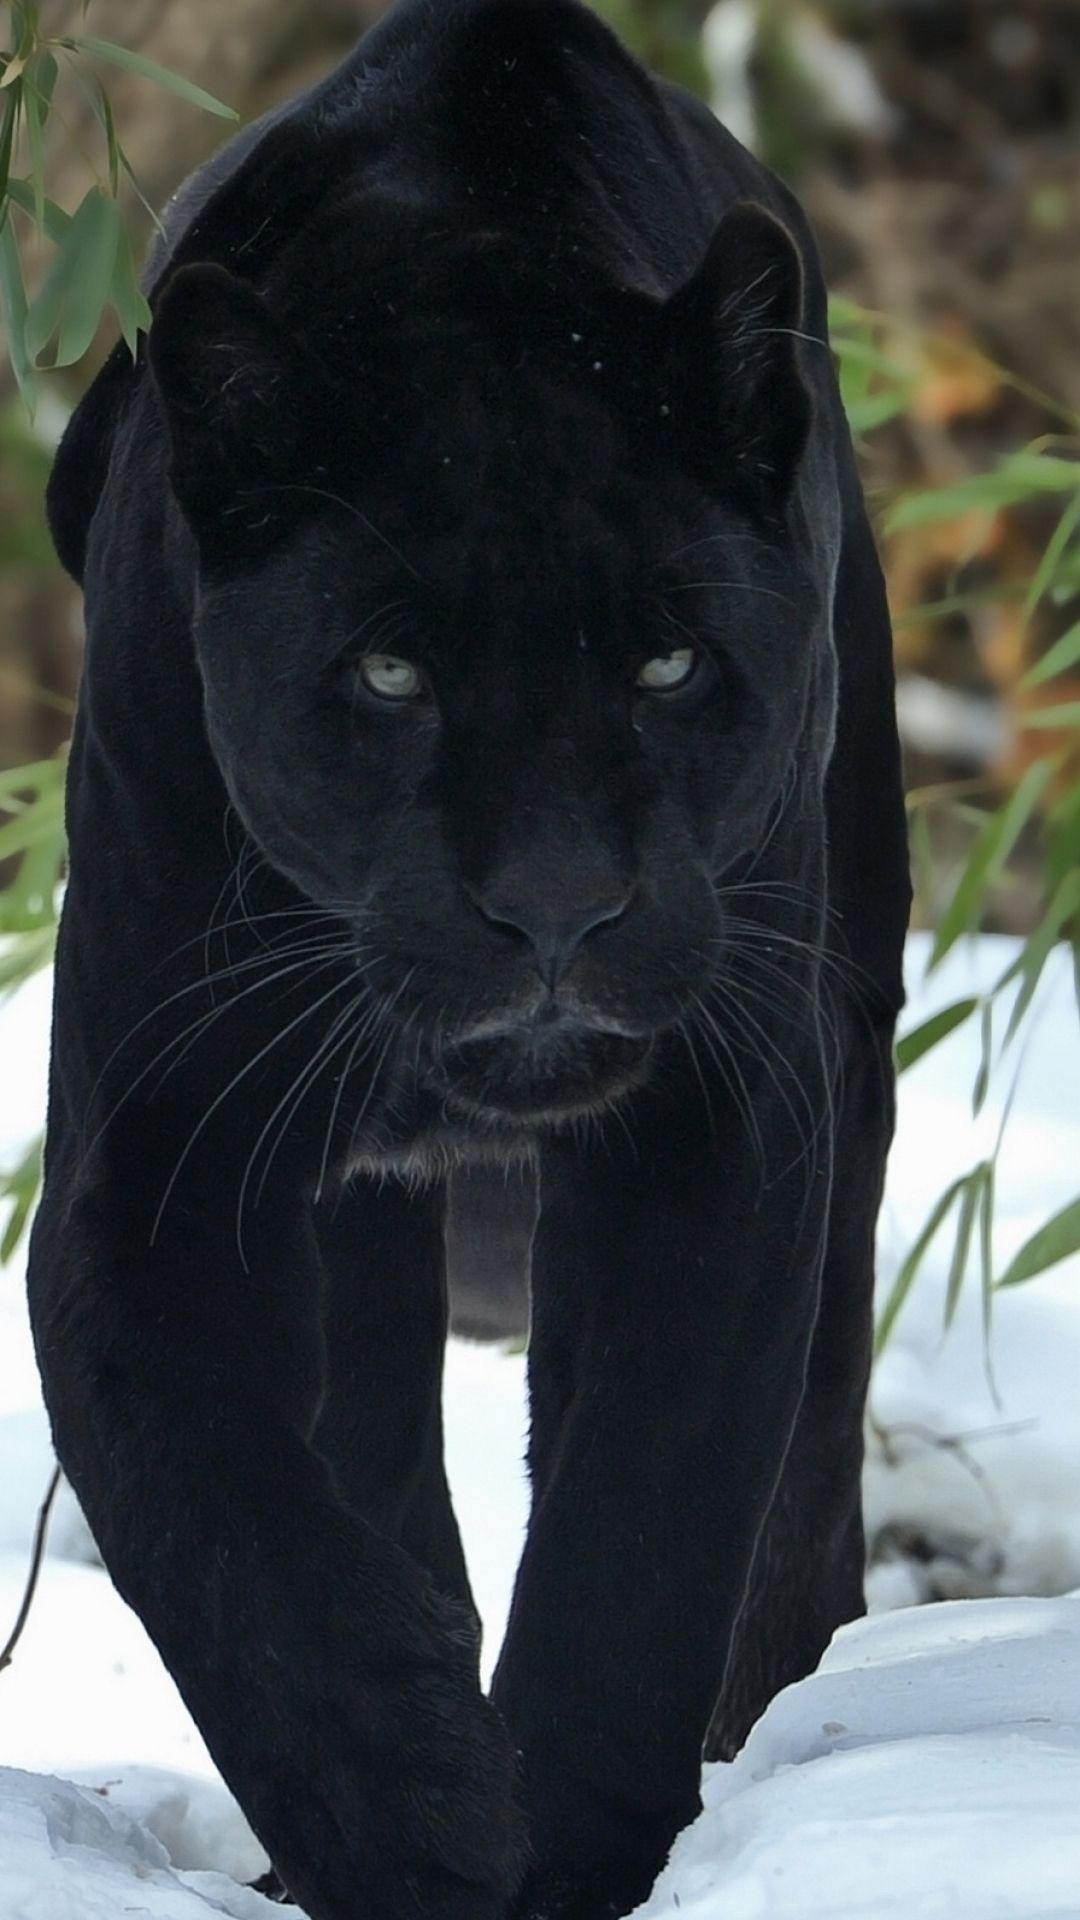 Black Jaguar Hd Mobile Wallpaper In 2020 Animals Wild Majestic Animals Animals